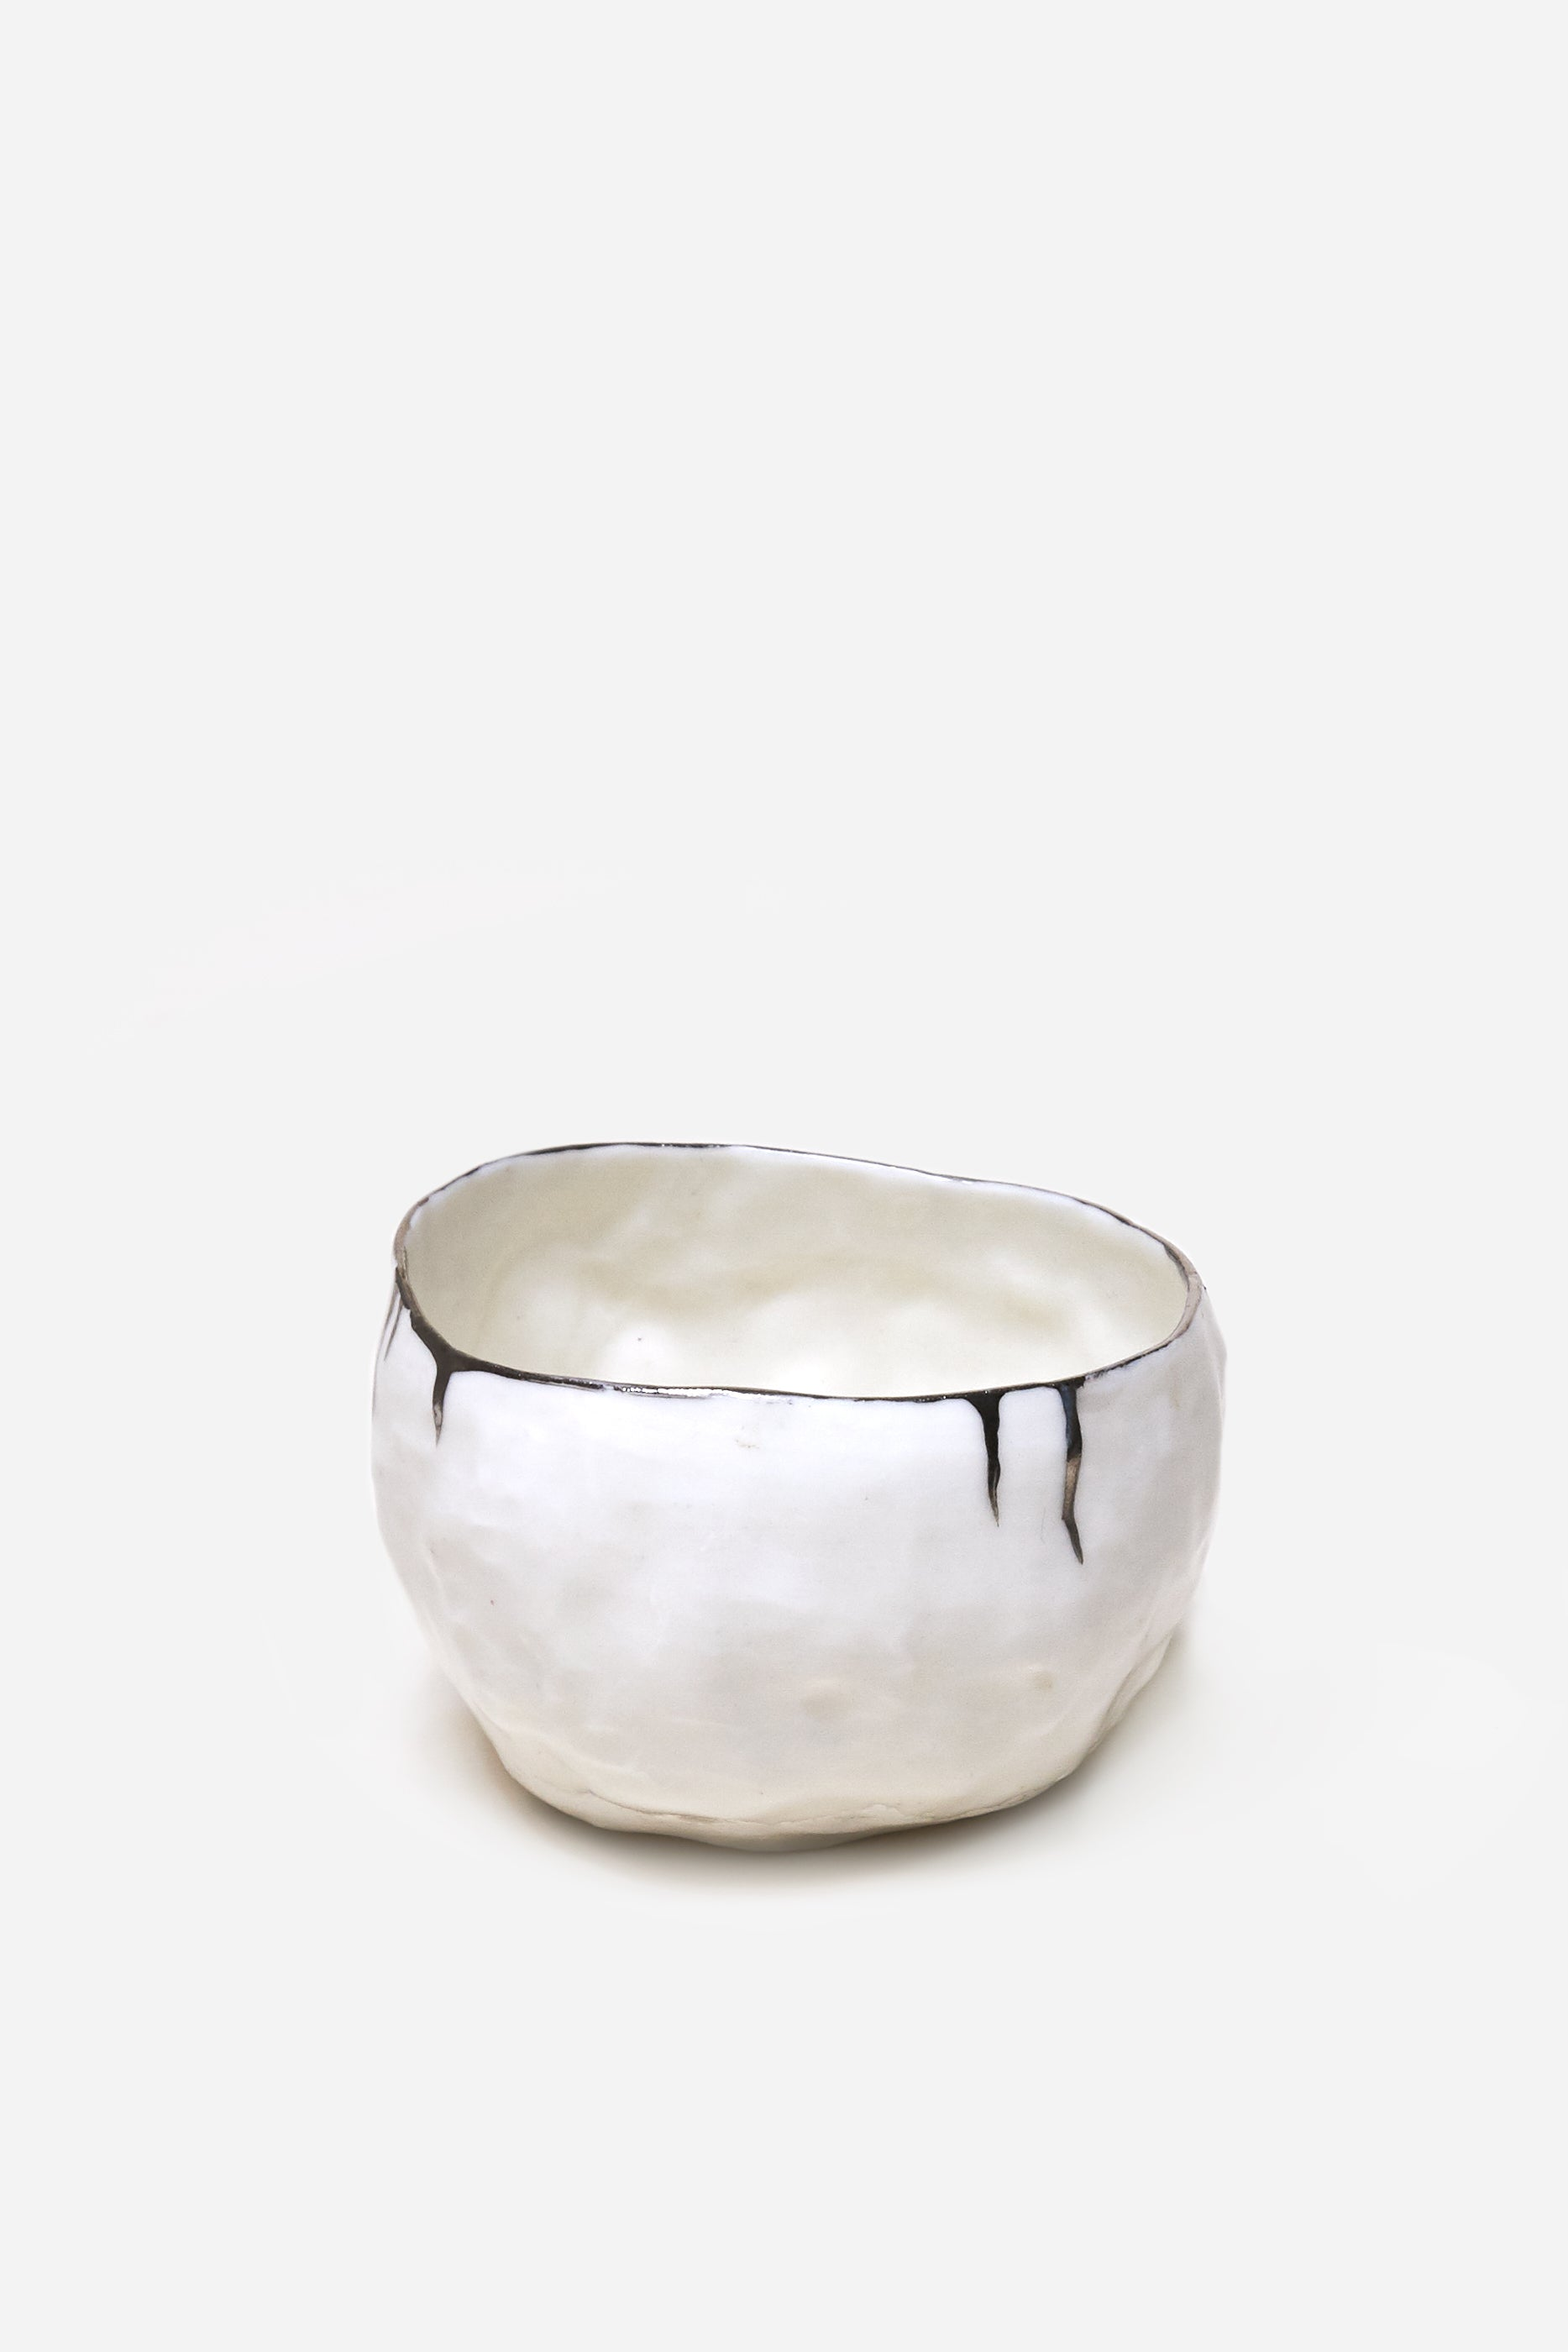 Nesting Bowl - Small